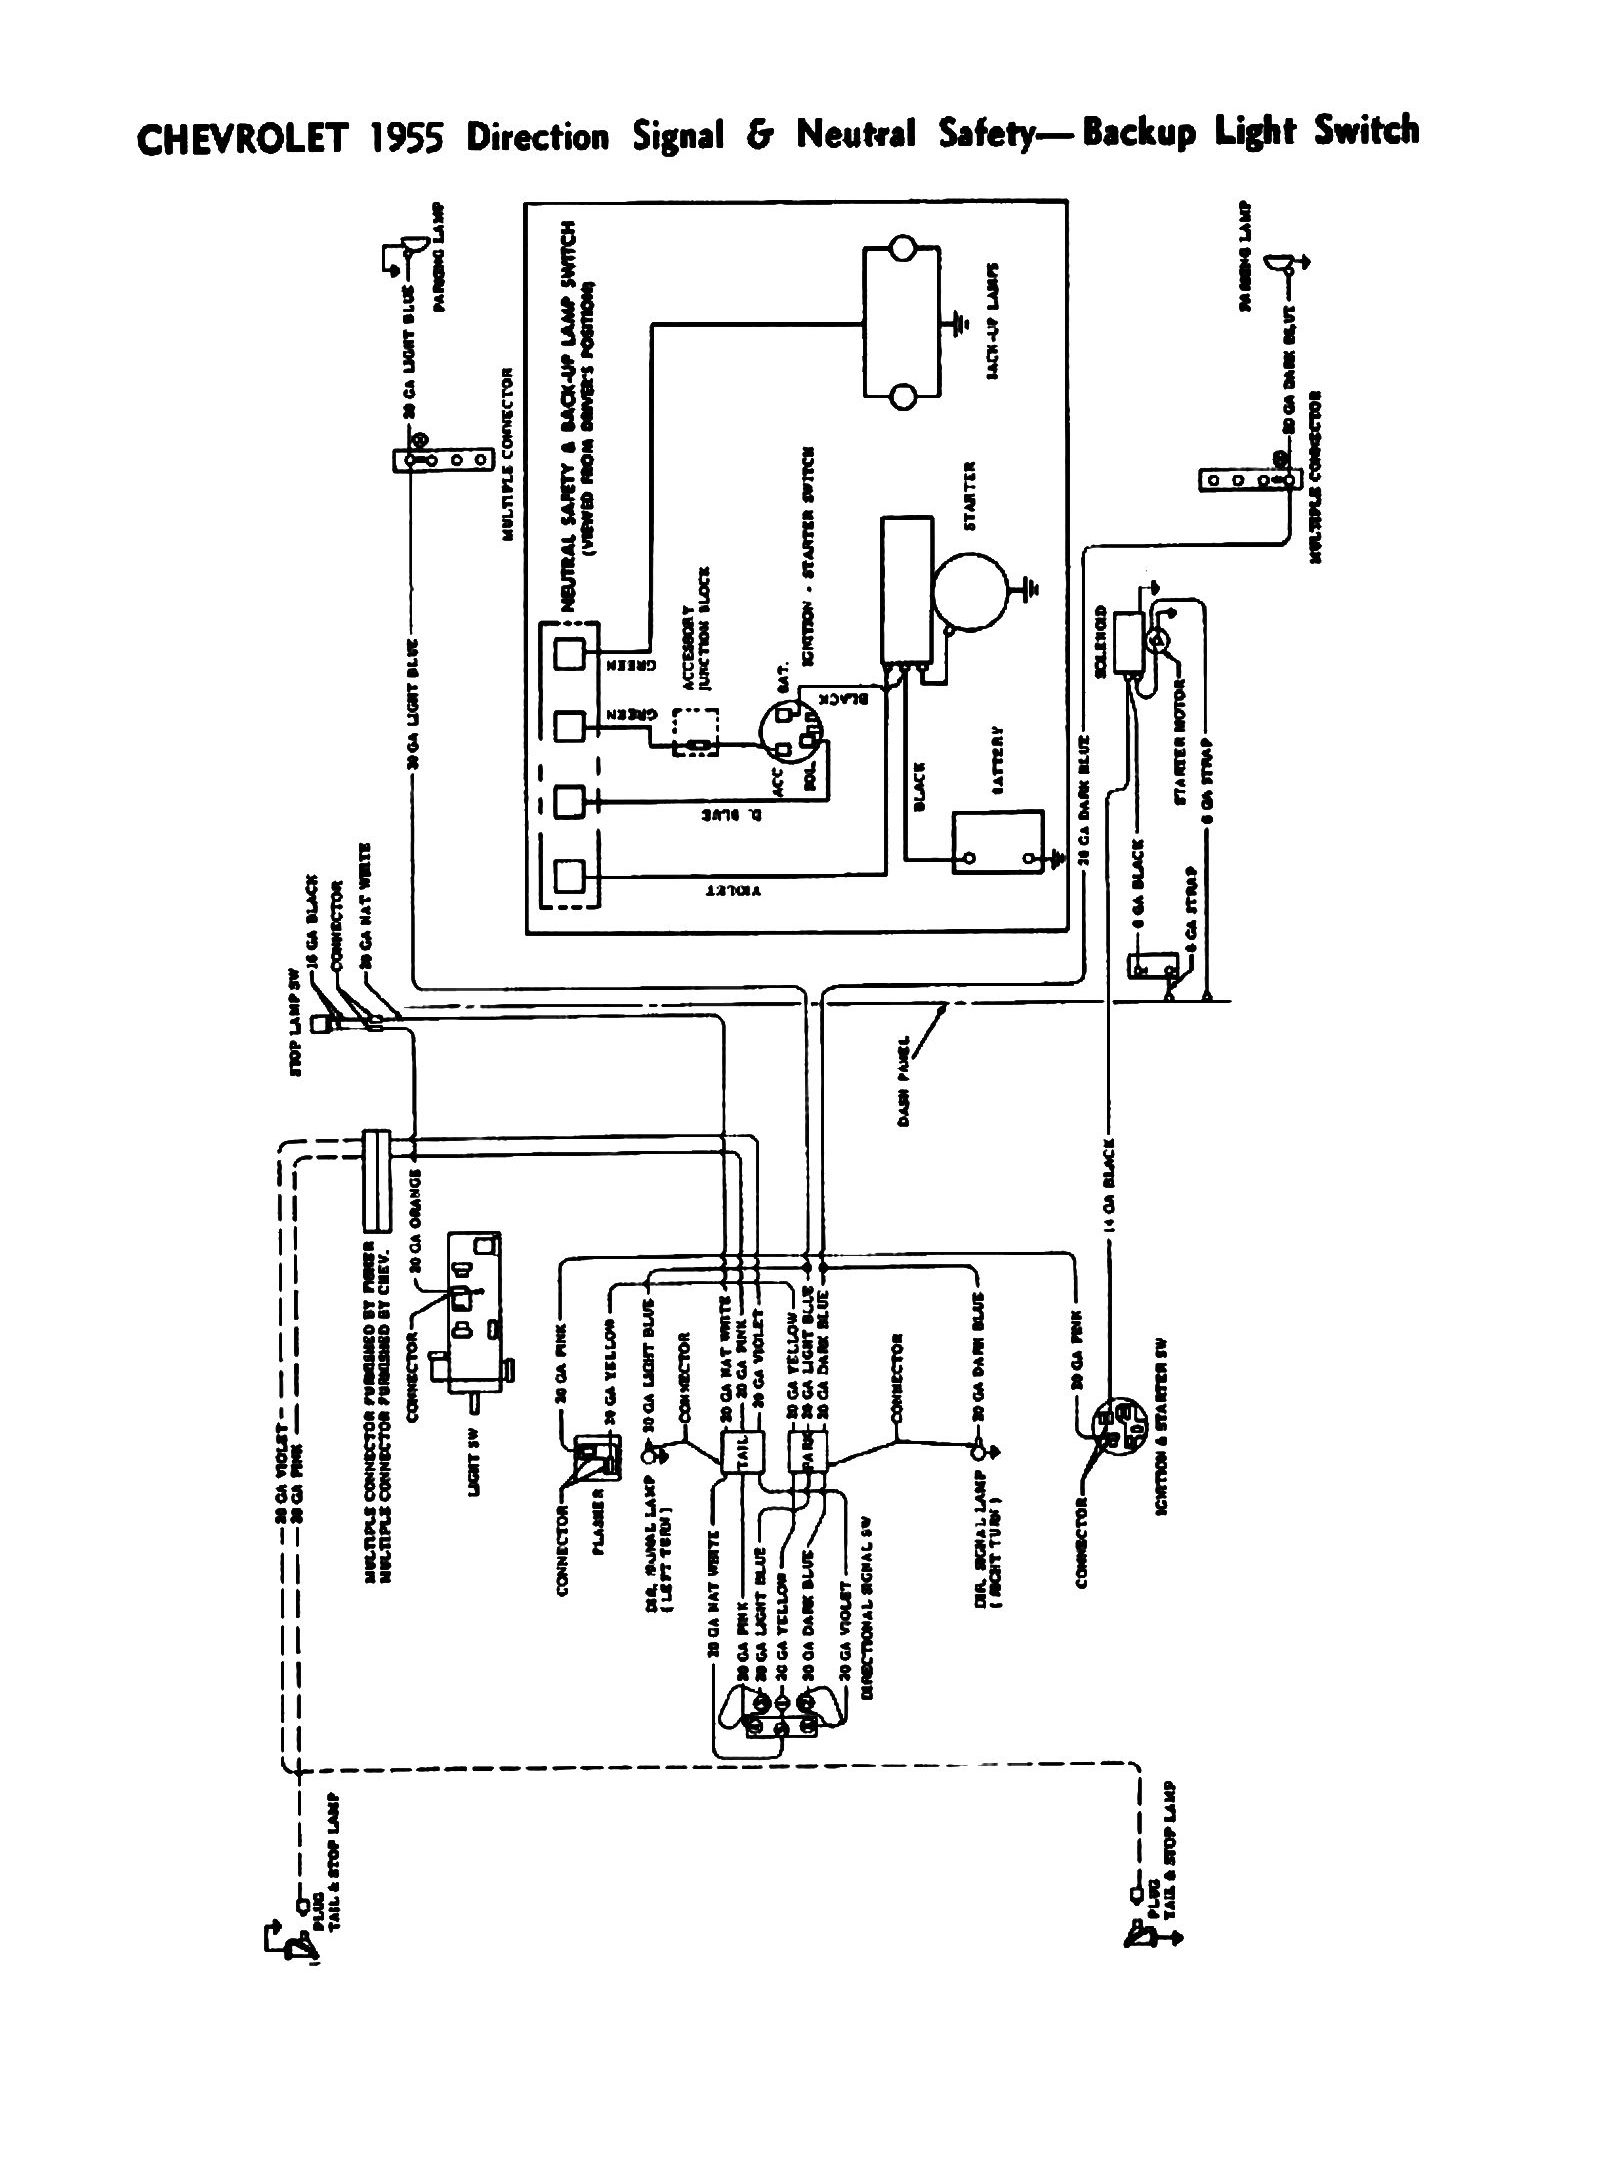 55signal wiring diagram headlight switch 55 chevrolet readingrat net 1955 chevy wiring diagram at gsmportal.co